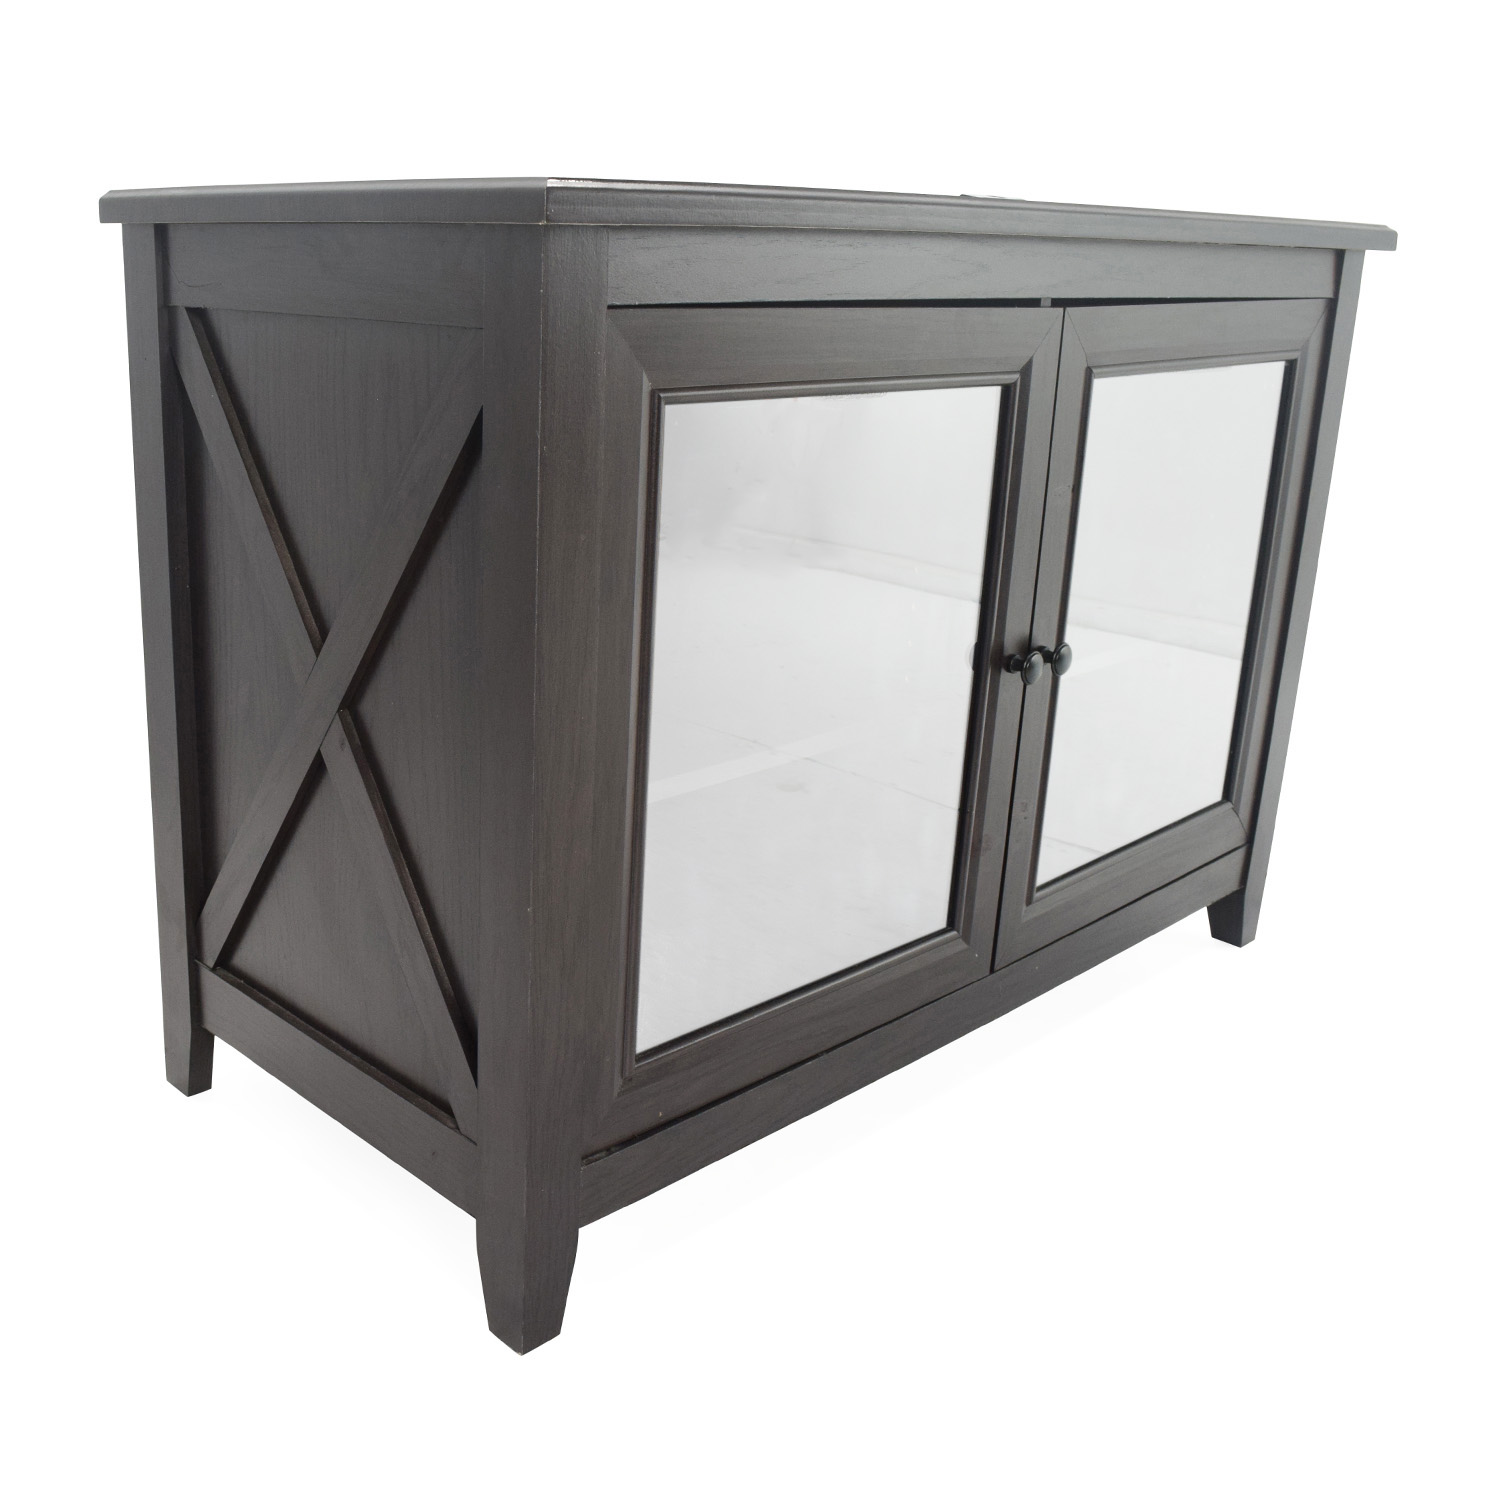 Unknown Brand TV Stand on sale